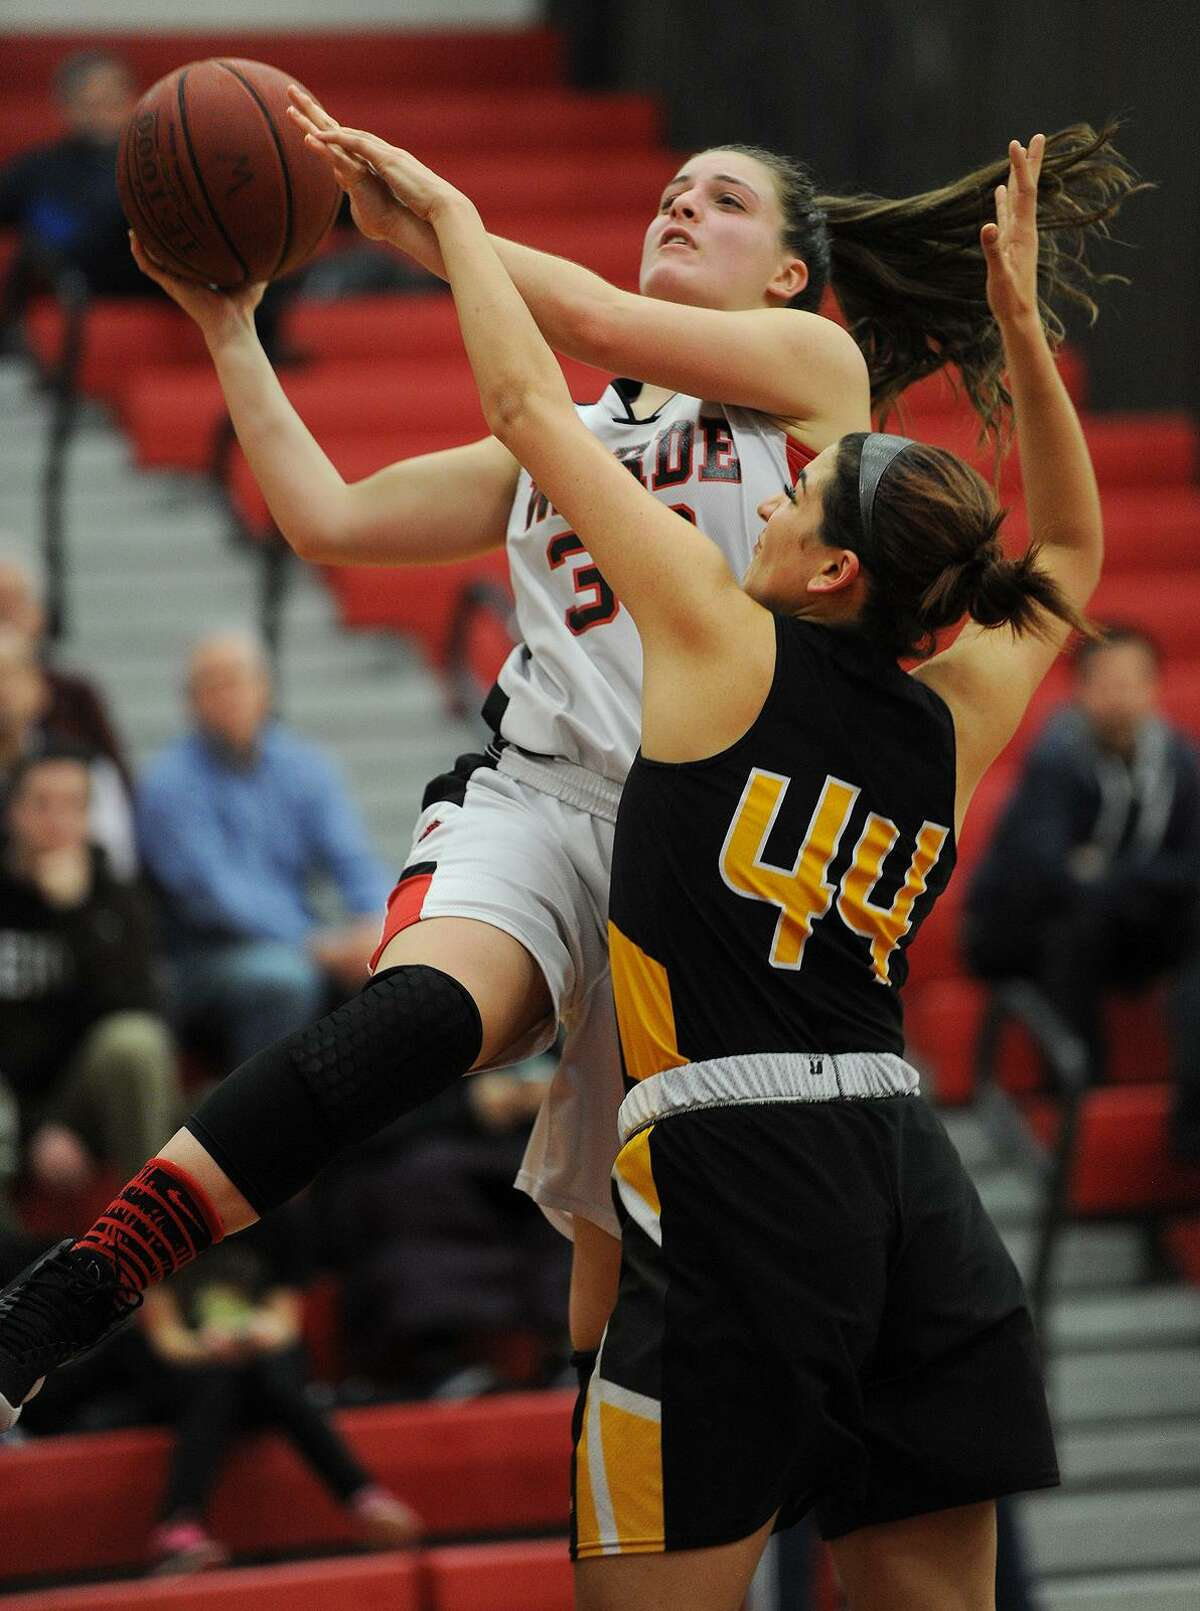 Warde's Olivia Parisi drives to the basket against Amity defender Hayley Esparo in the second half of Monday night's game at Warde High School in Fairfield.